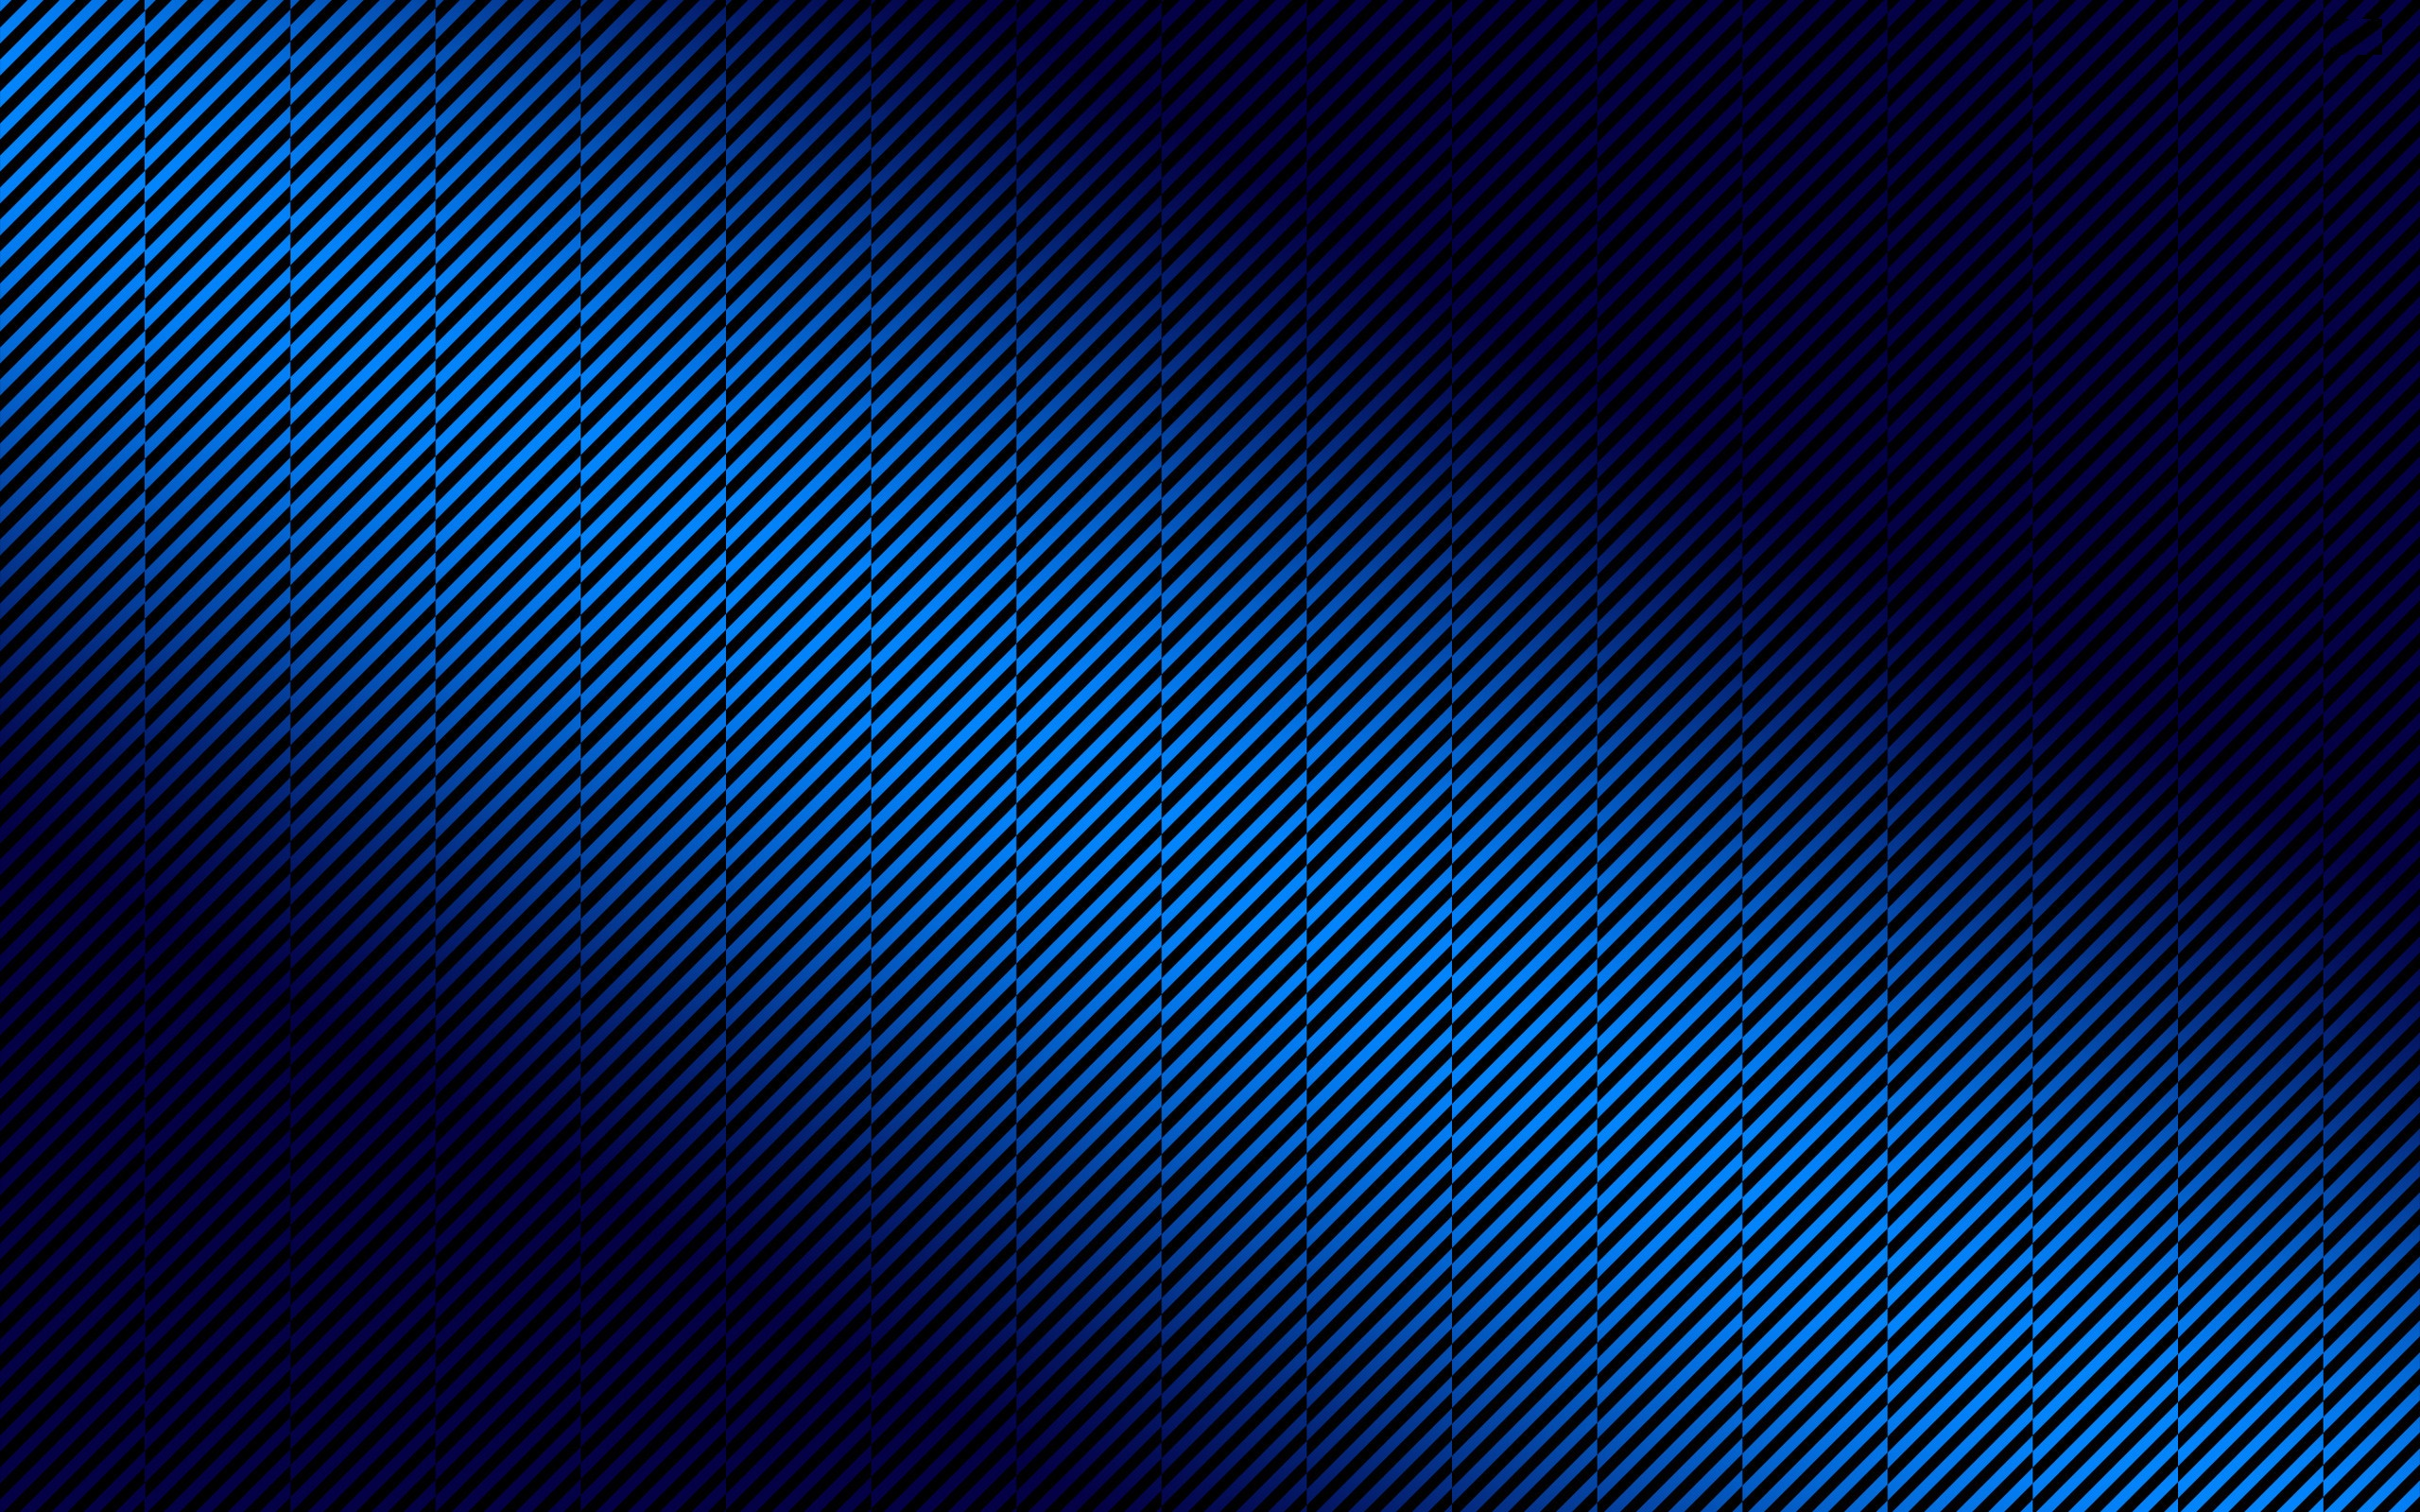 blue carbon fiber wallpaper hd | wallpaper.wiki